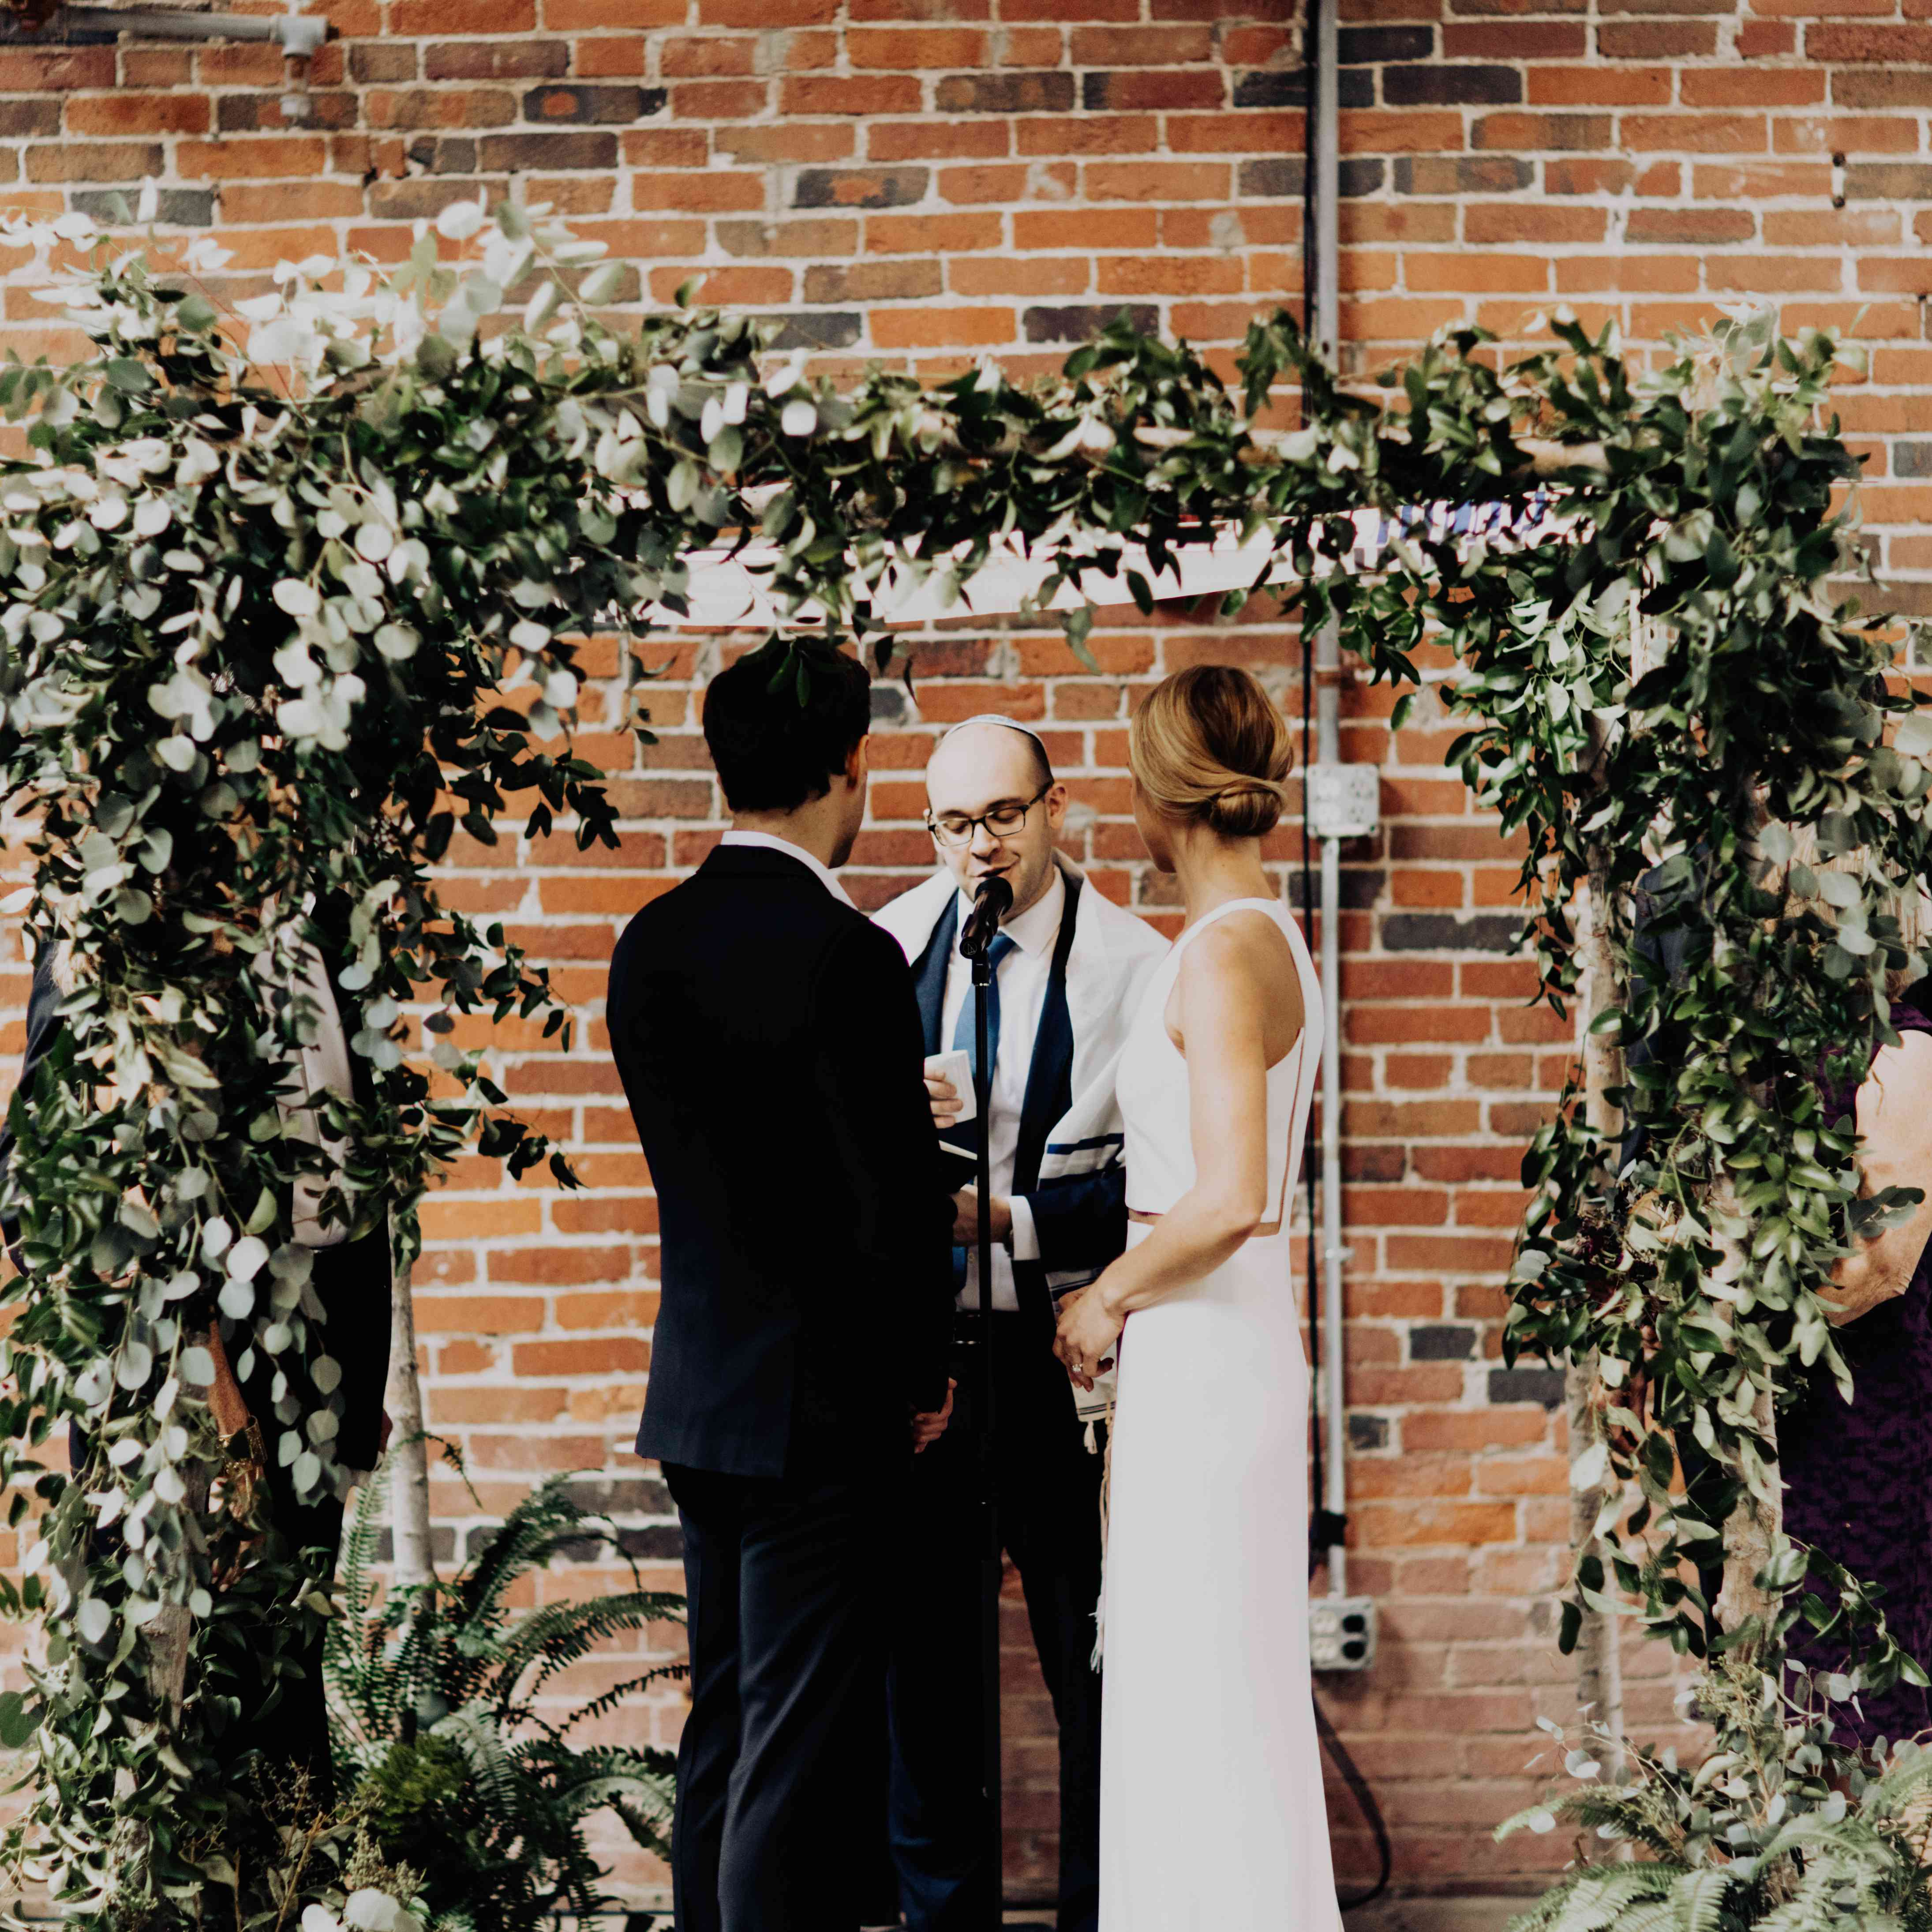 <p>ceremony greenery covered chuppah</p><br><br>